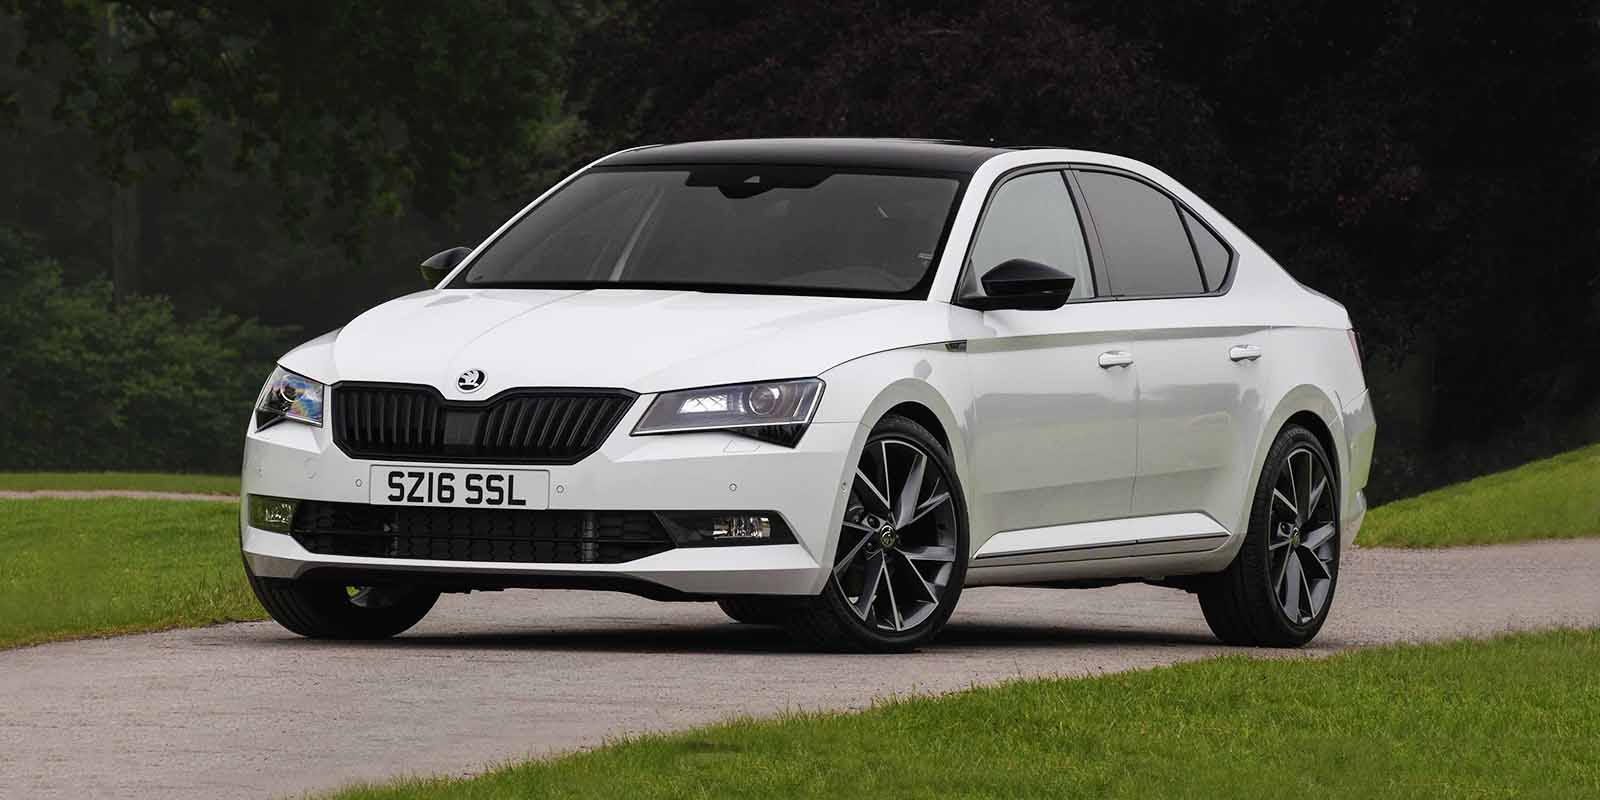 Interieur Golf 1 Sportline Skoda Superb Sportline What You Need To Know Carwow